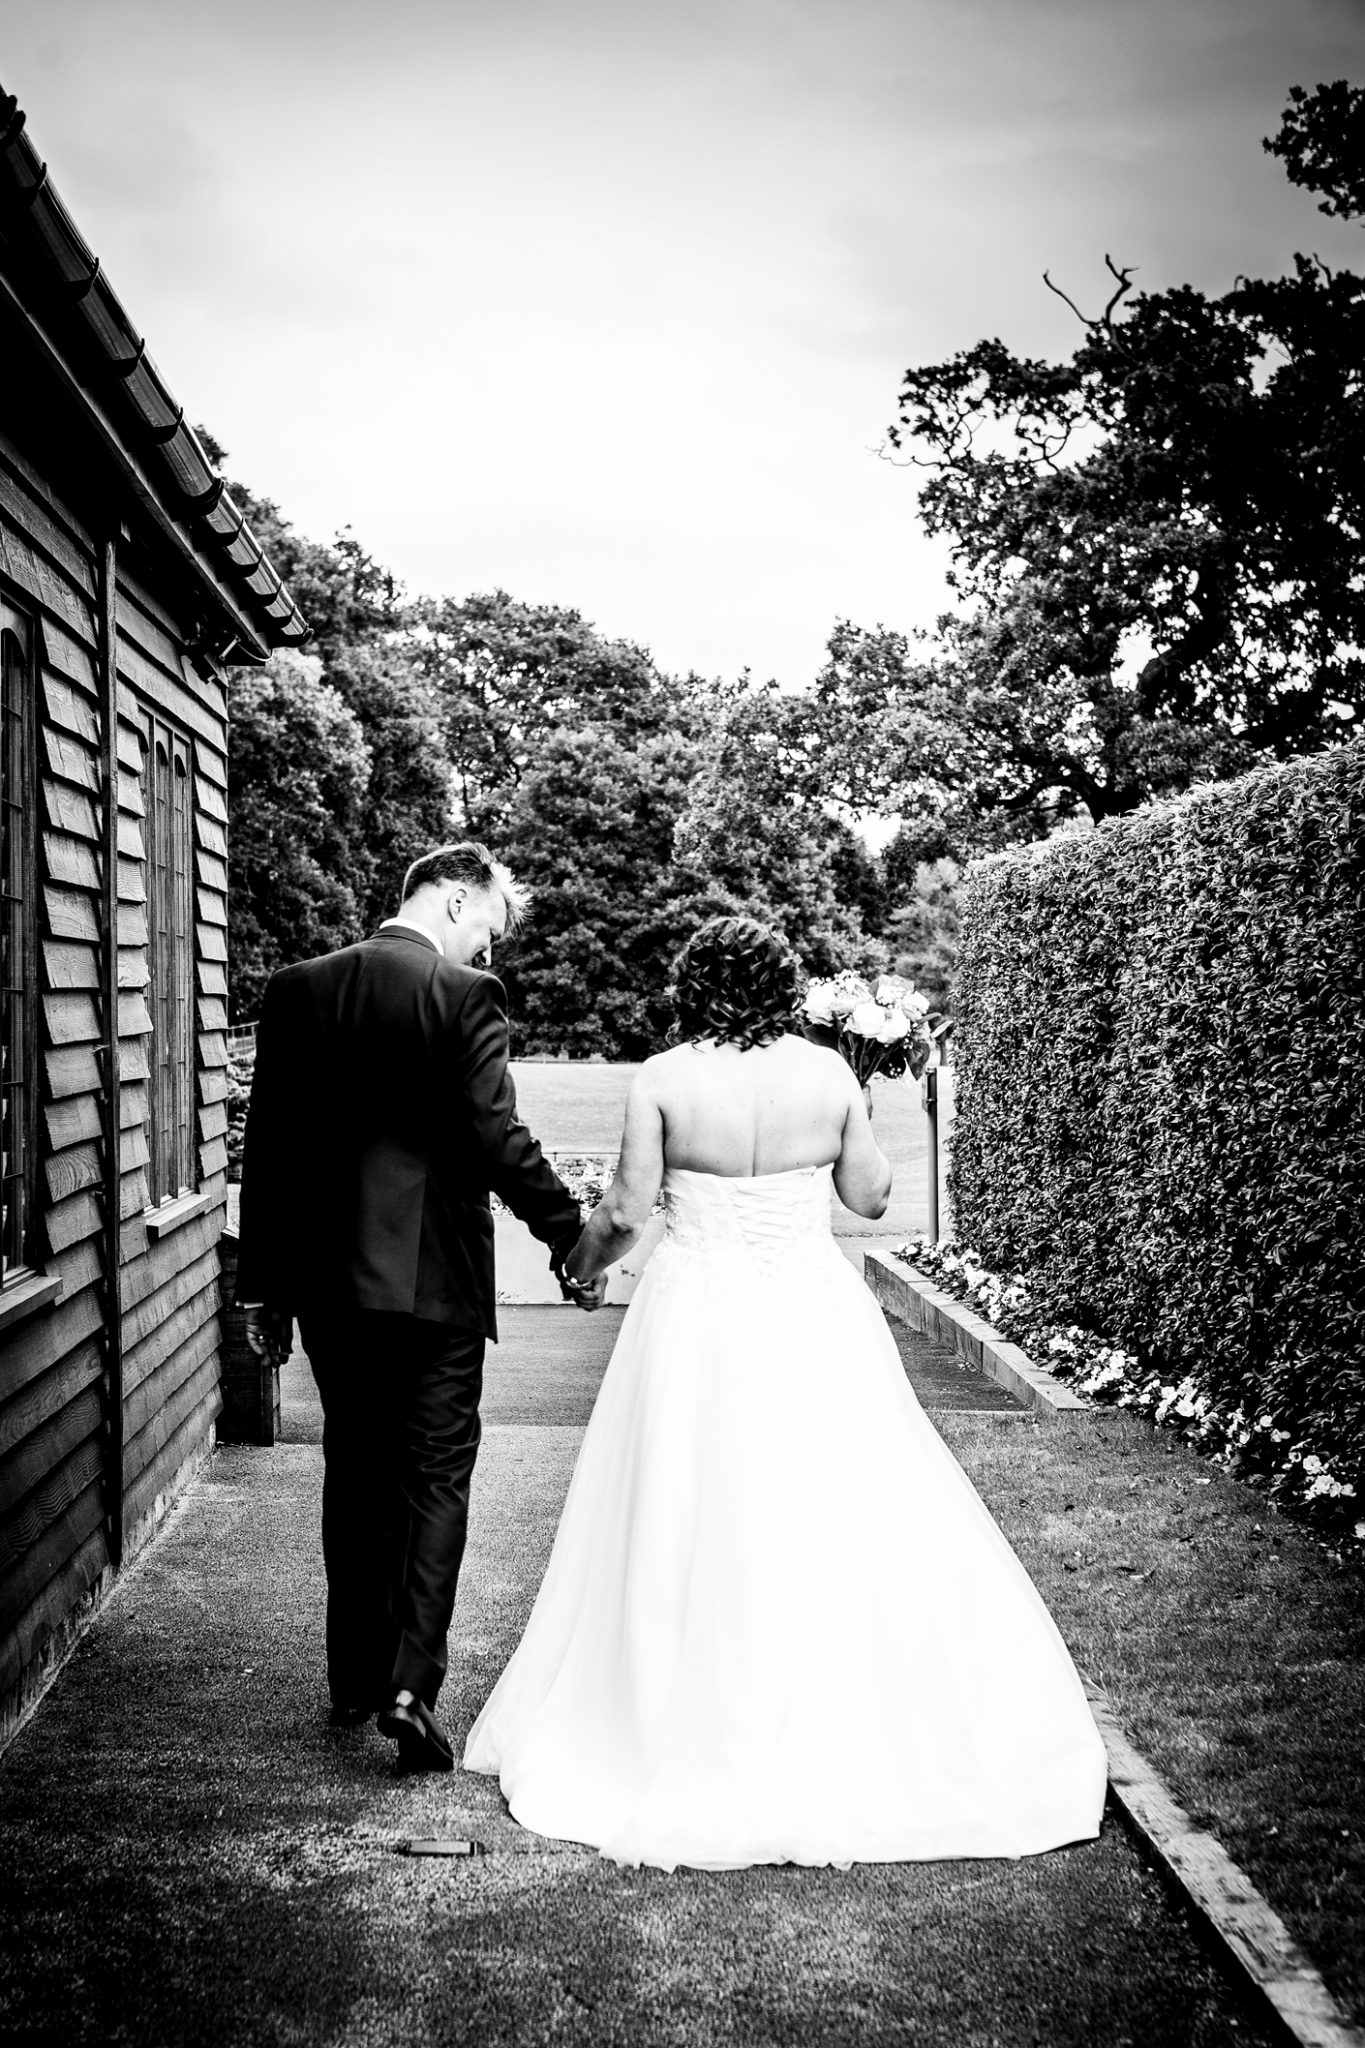 wedding-photography-of-the-bride-and-groom-after-the-ceremont-at-merrydale-manor-near-knutsford-cheshire